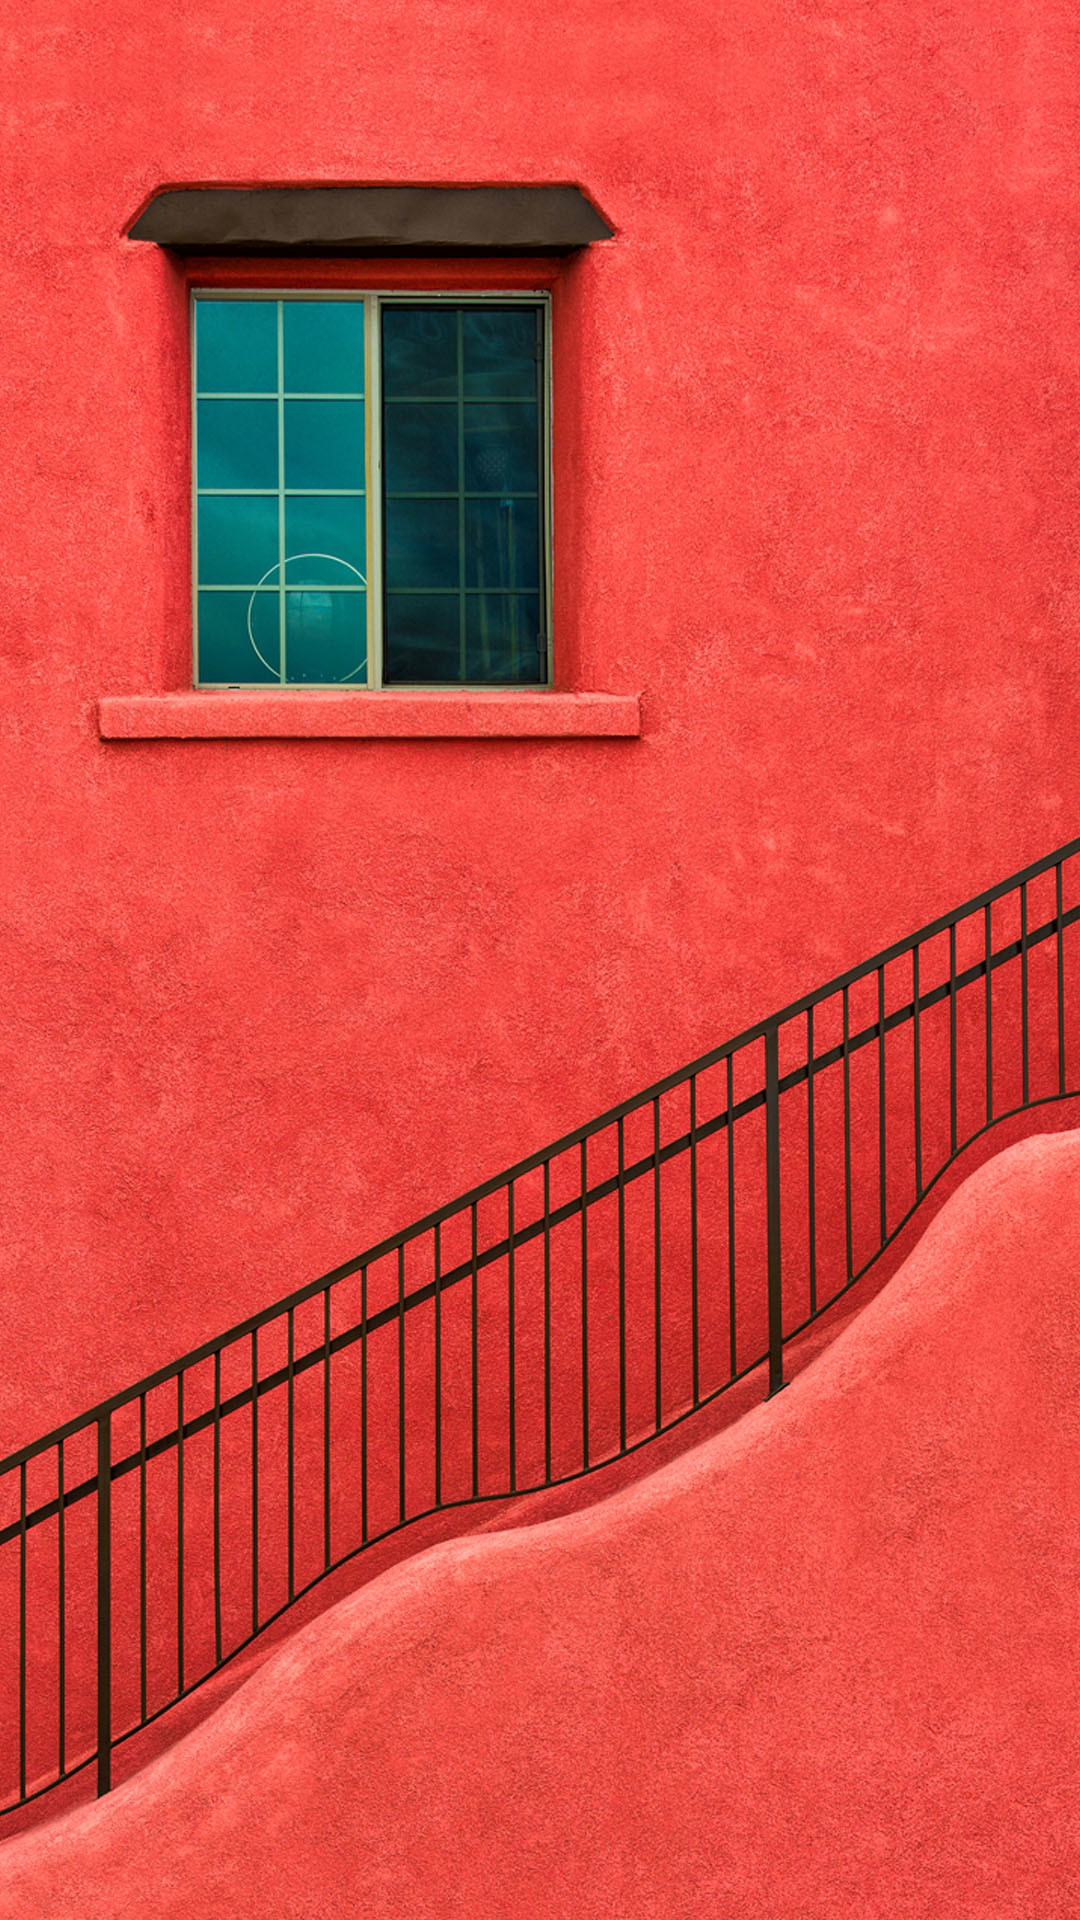 Red House Wall Window Stairs iPhone 6 Plus HD Wallpaper …